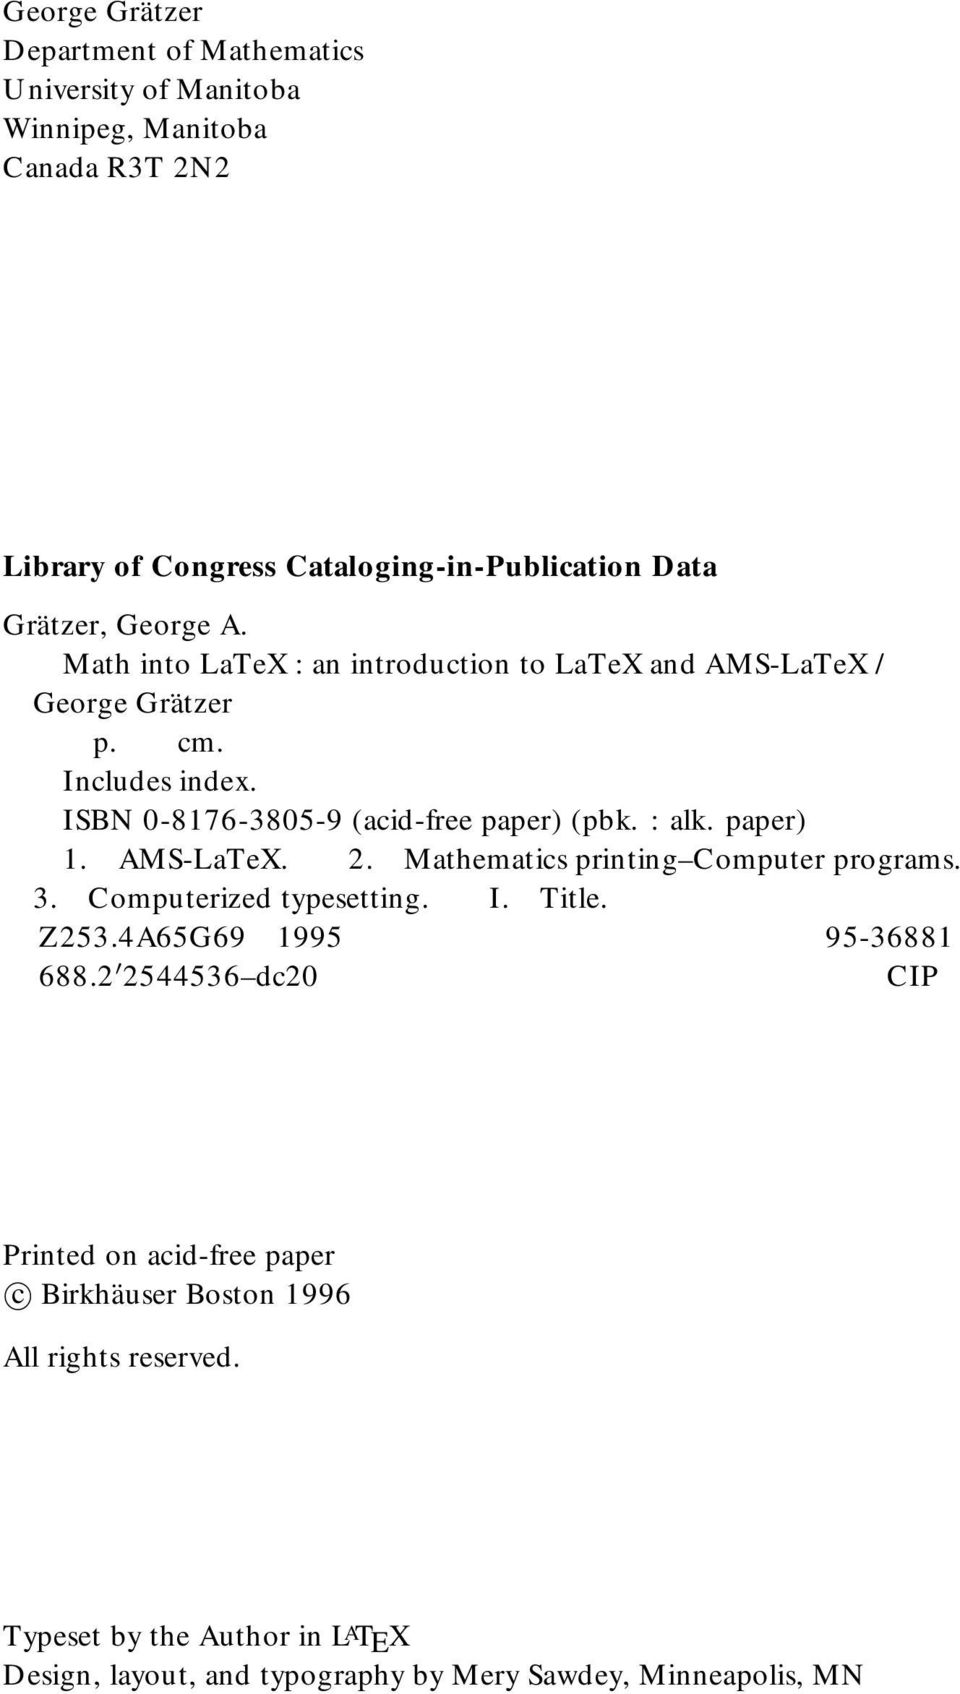 paper) 1. AMS-LaTeX. 2. Mathematics printing Computer programs. 3. Computerized typesetting. I. Title. Z253.4A65G69 1995 95-36881 688.